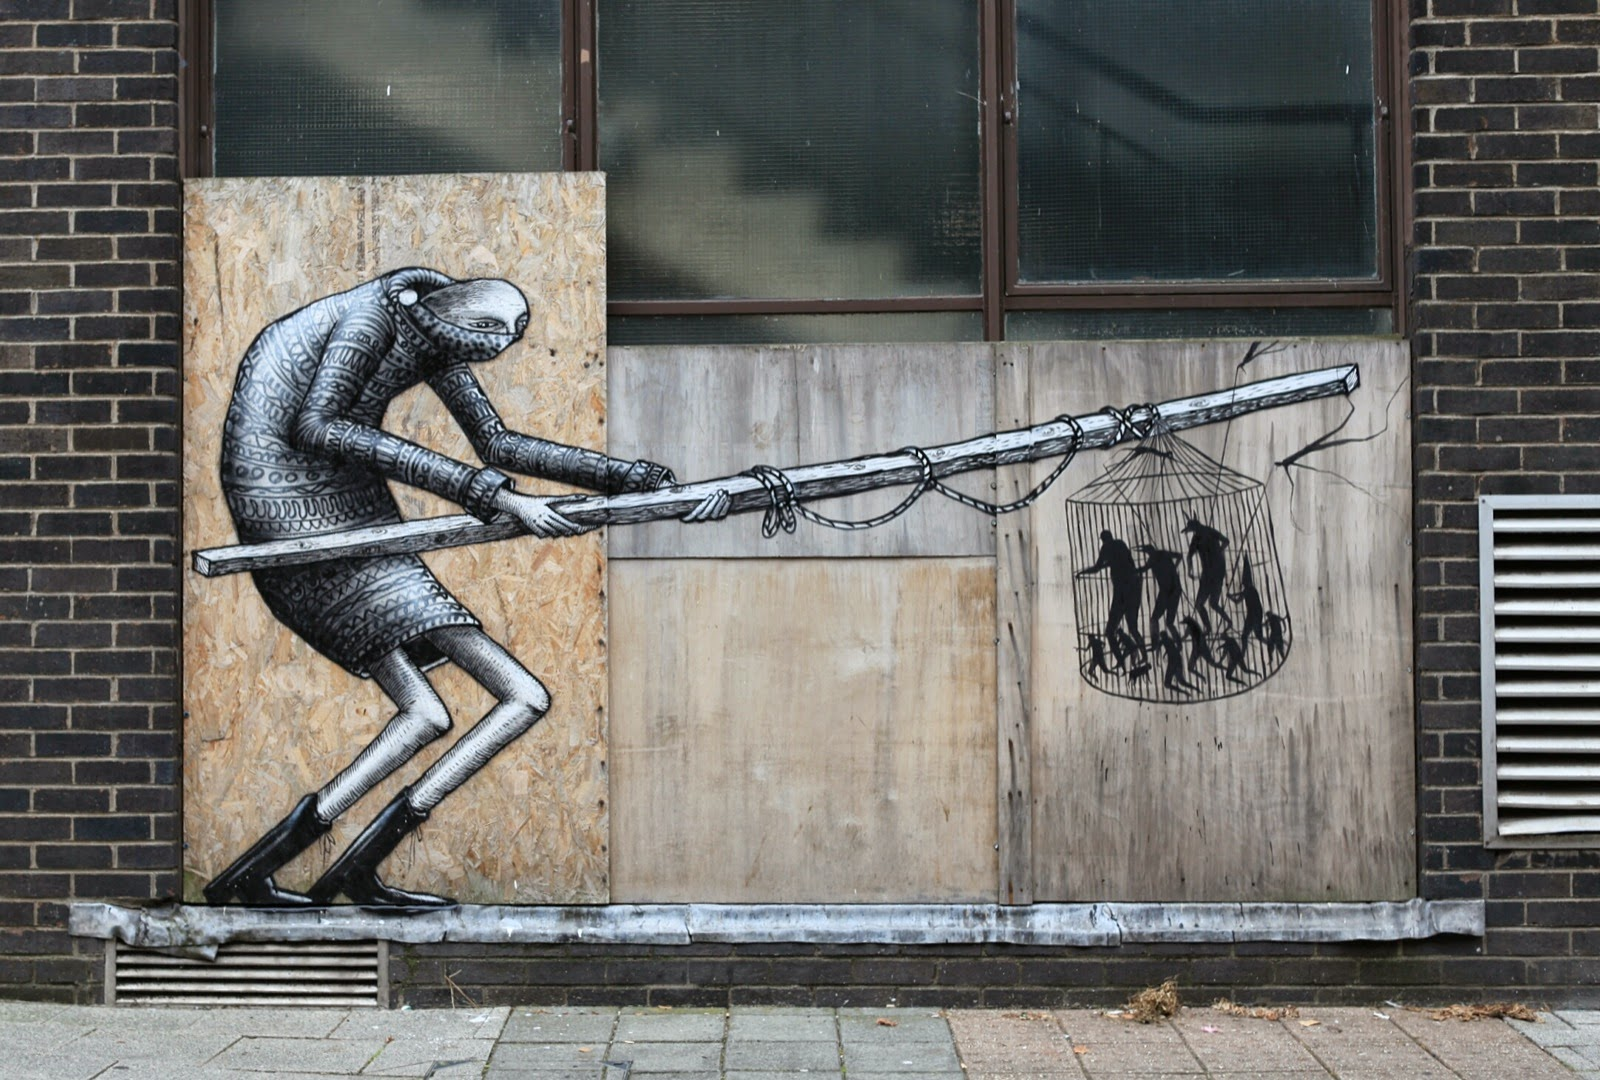 Phlegm and David De La Mano recently teamed up on the streets of Cardiff in South Wales to work on a new collaboration.